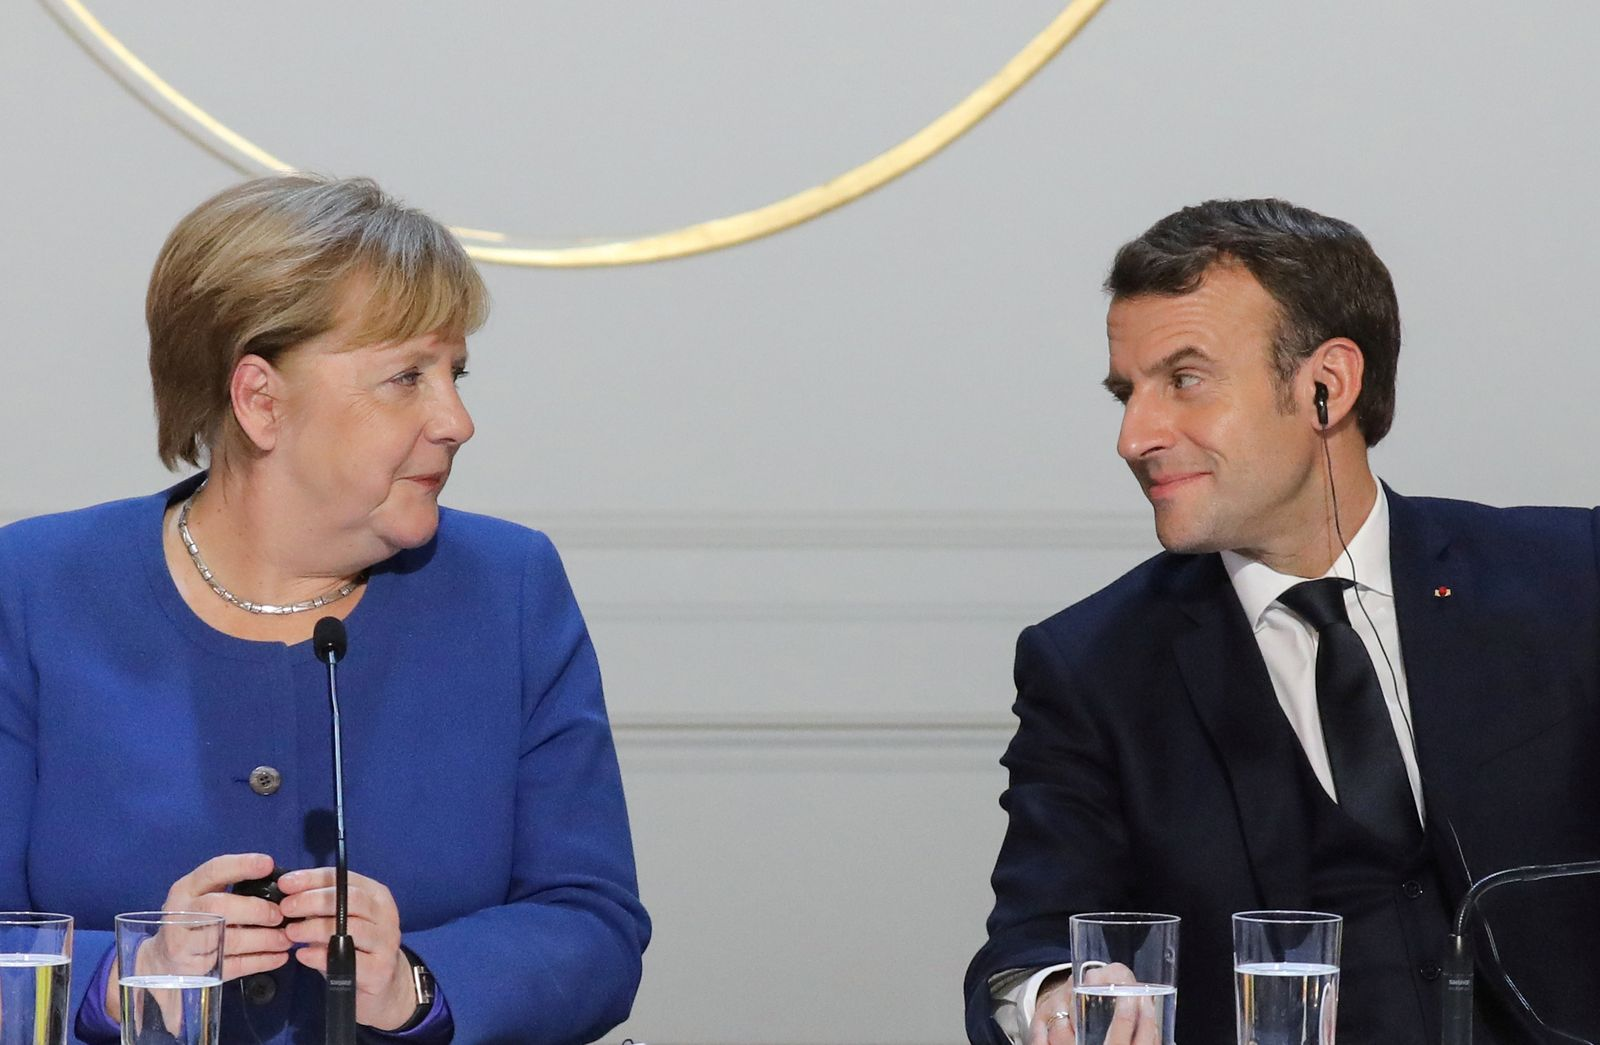 FILE PHOTO: German Chancellor Angela Merkel and French President Emmanuel Macron give a press conference after Ukraine summit